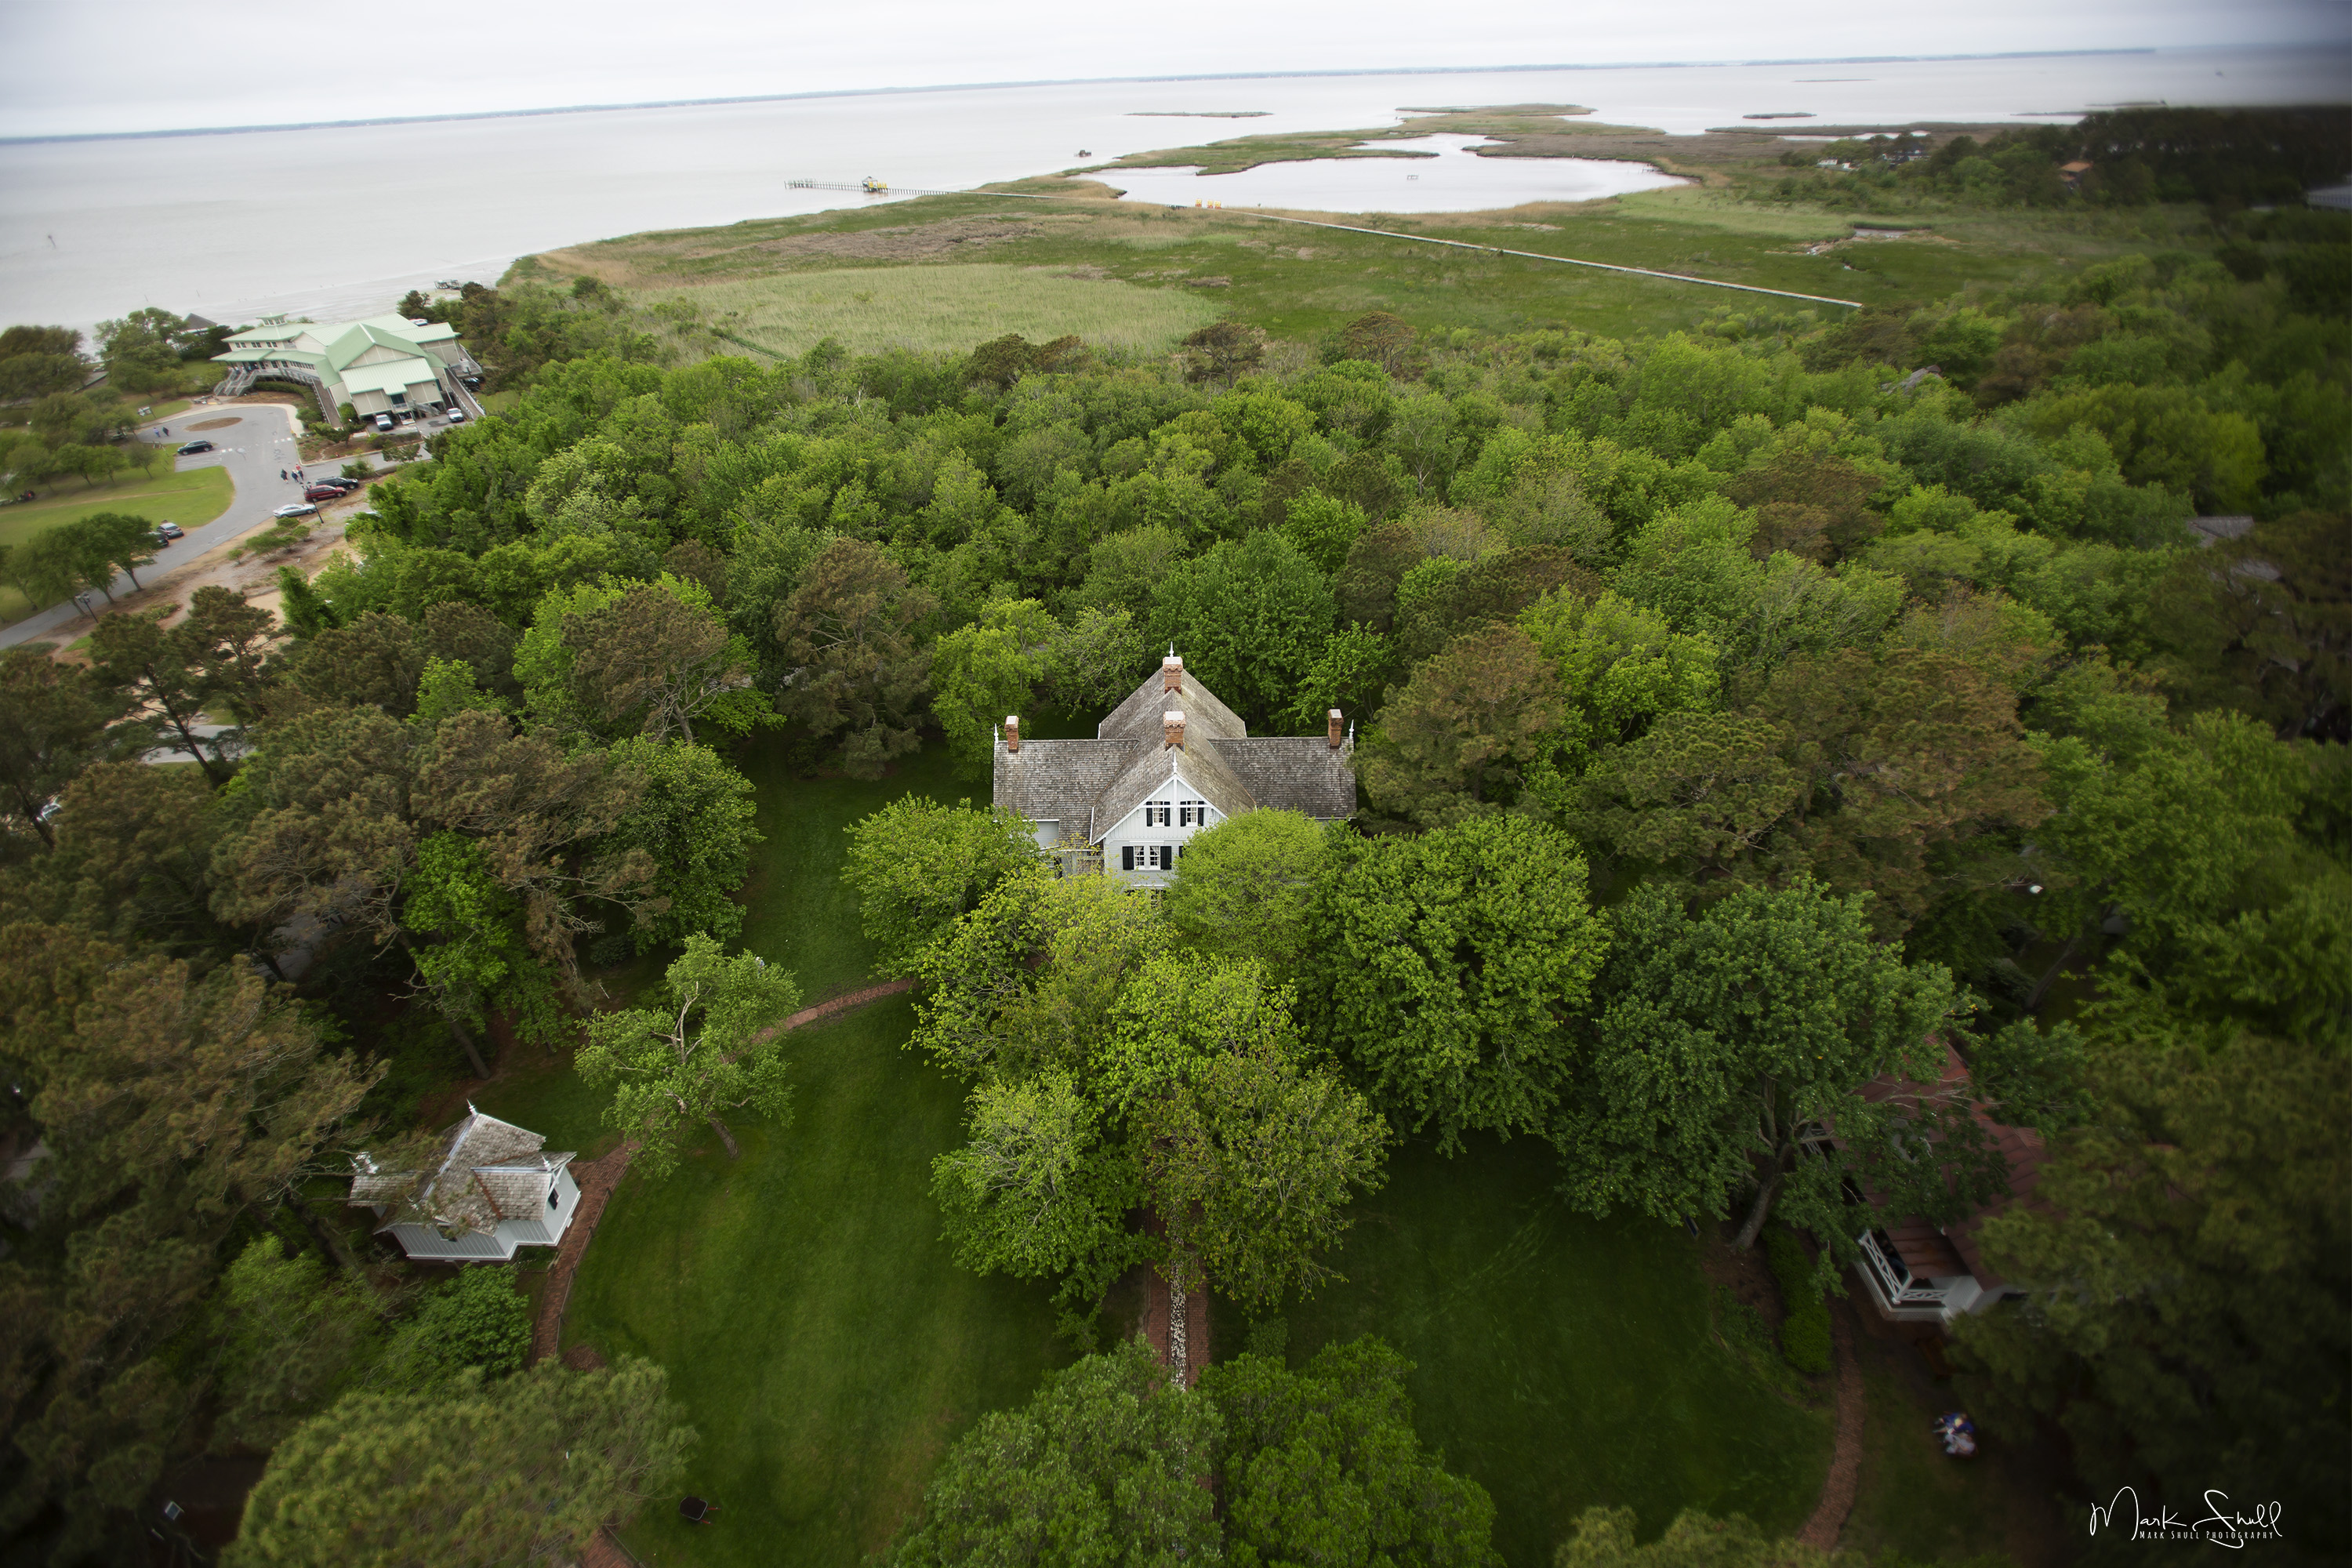 View from Currituck Lighthouse post